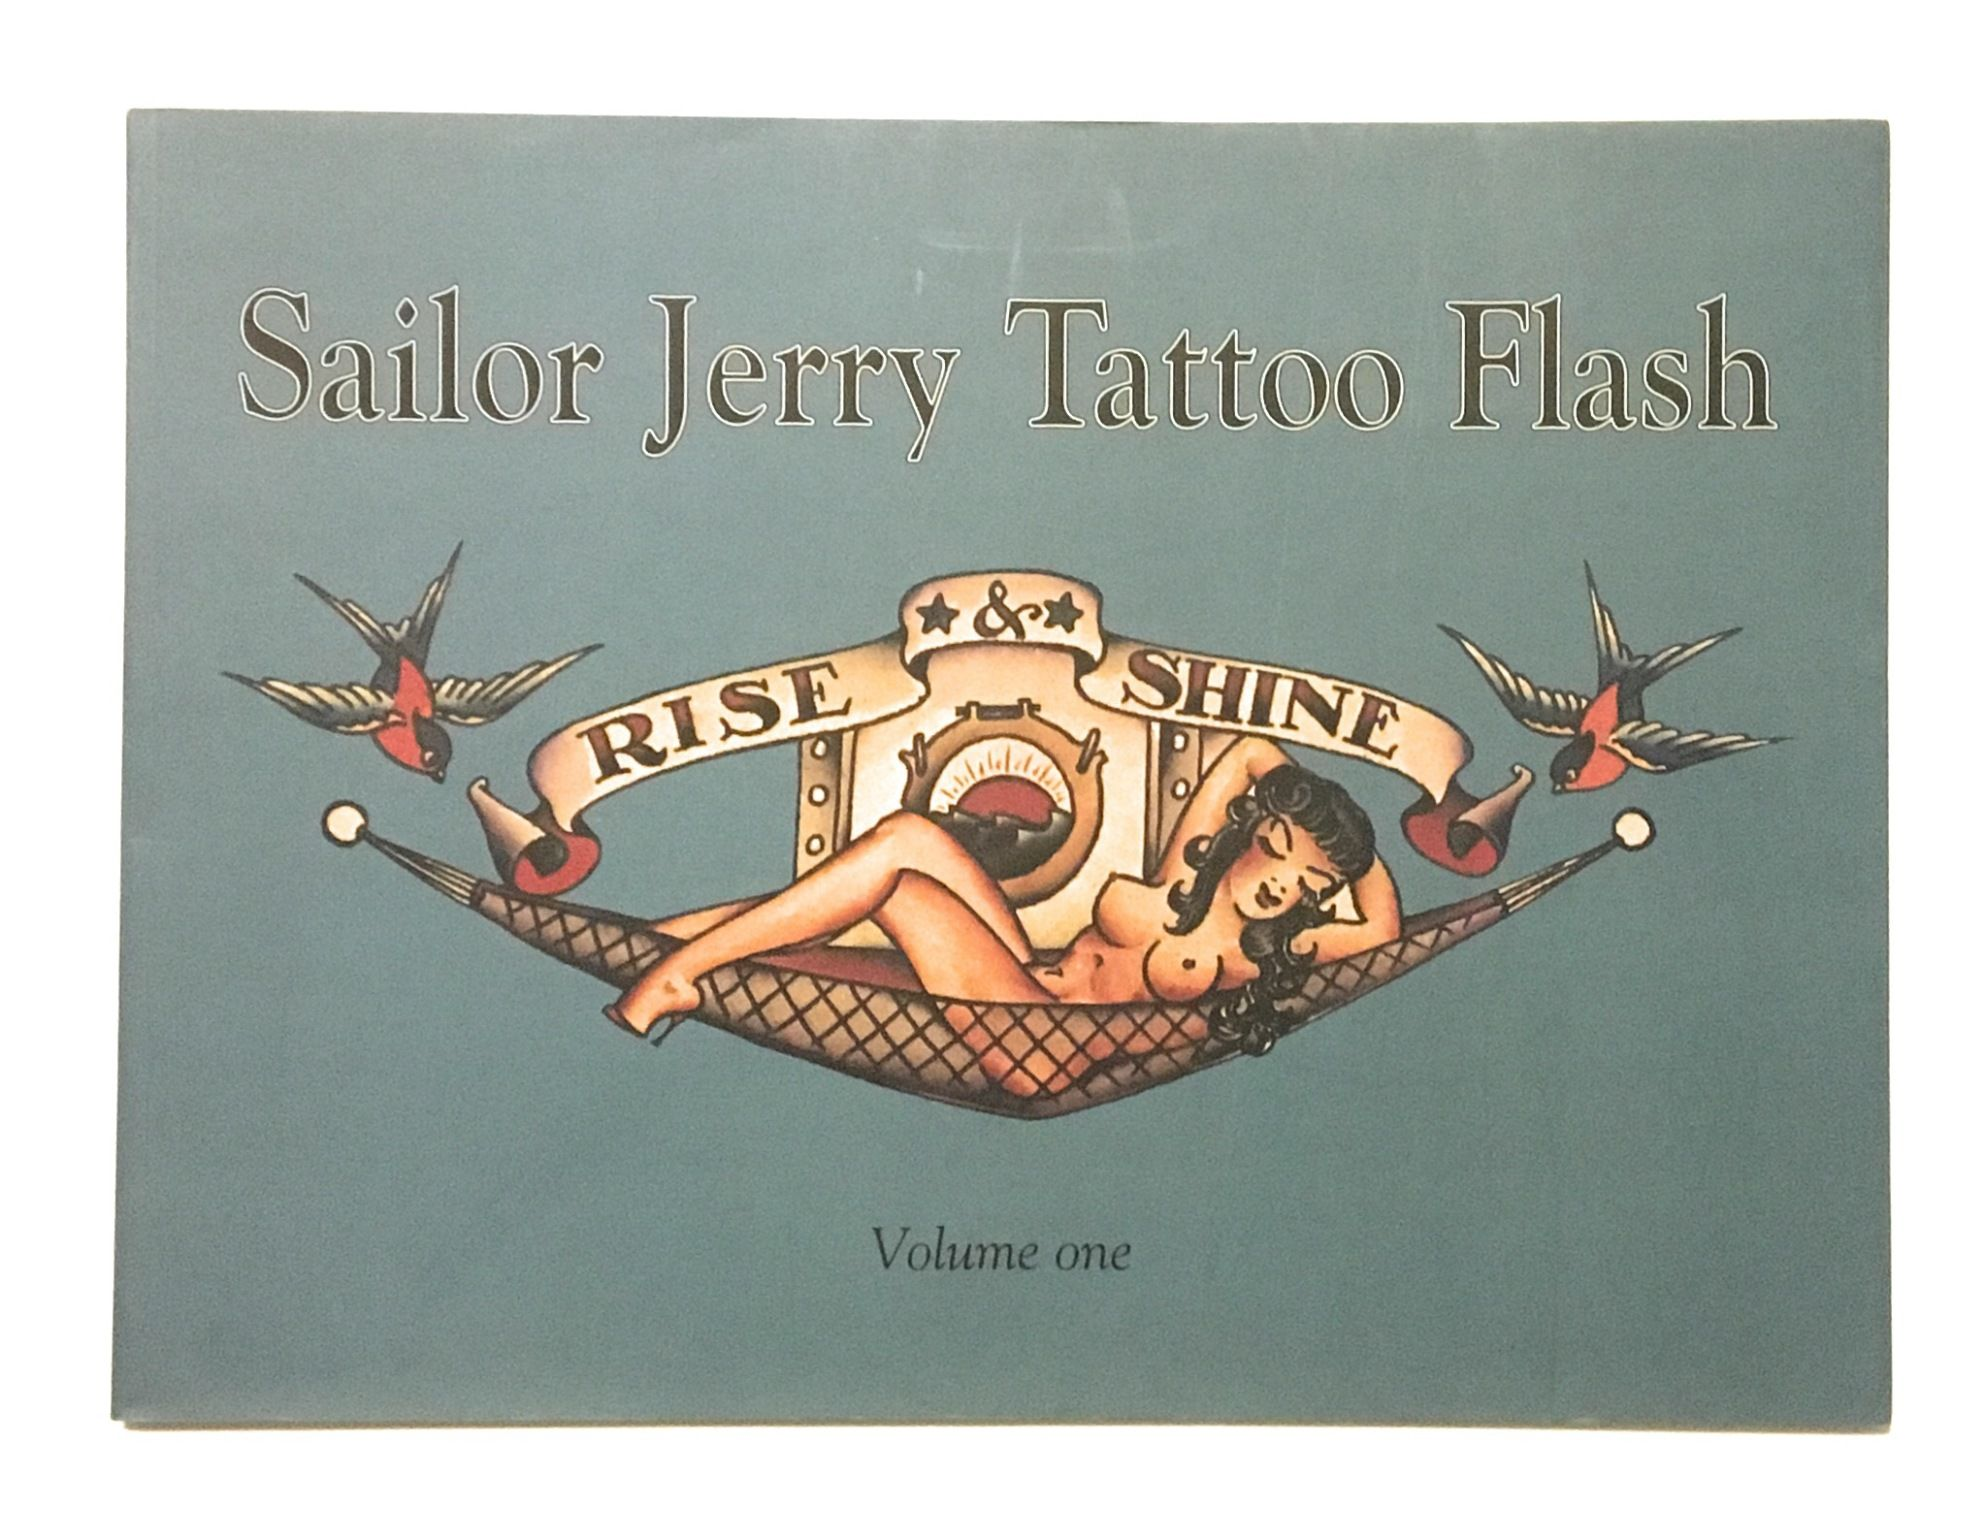 Sailor Jerry Tattoo Flash Michael Malone Collection Volume I Rise And Shine By Sailor Jerry Norman Keith Collins Hardy Don Ed Intro 1996